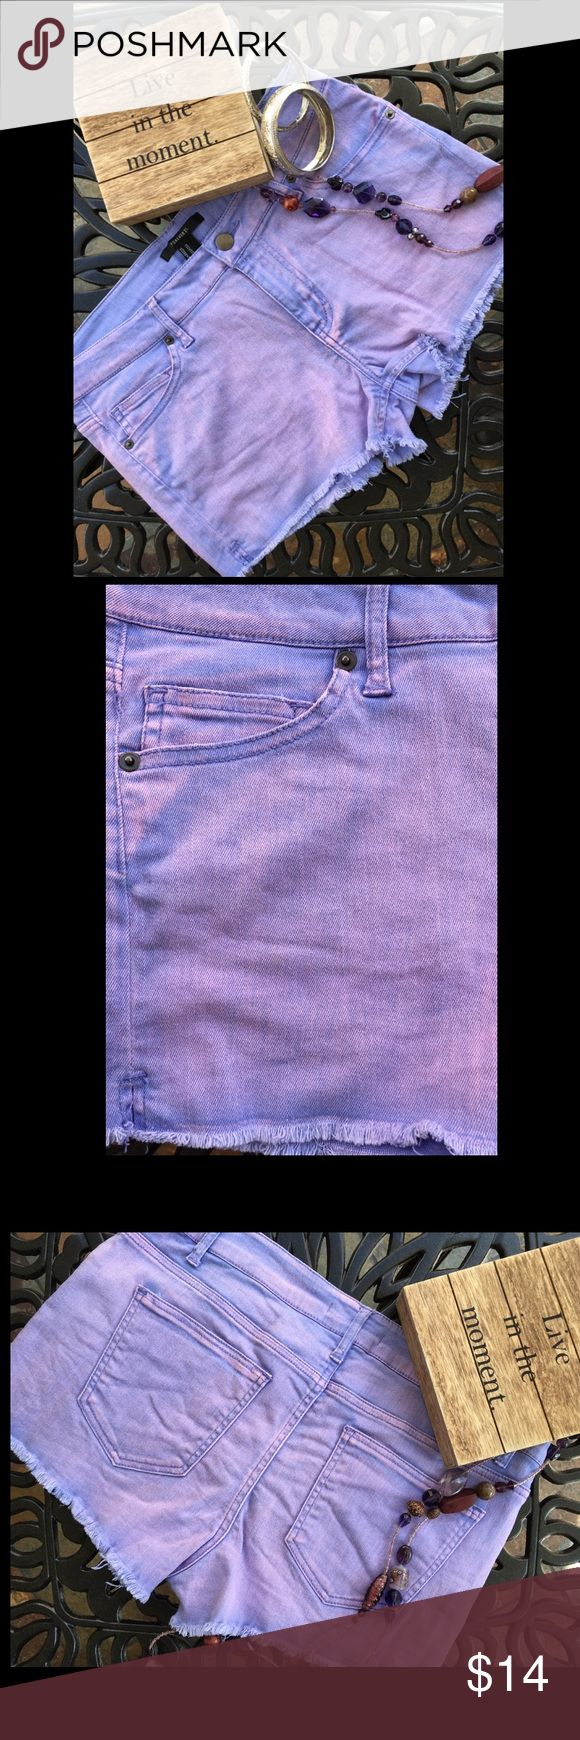 "Lavender Jean Shorts Lavender & light pink jean shorts have three front  and two back pockets. Content is 98% Cotton & 2% Spandex. Inseam is 2.25"" & waist measures 16.25"". Excellent condition with NO spots or damage. Forever 21 Shorts Jean Shorts"